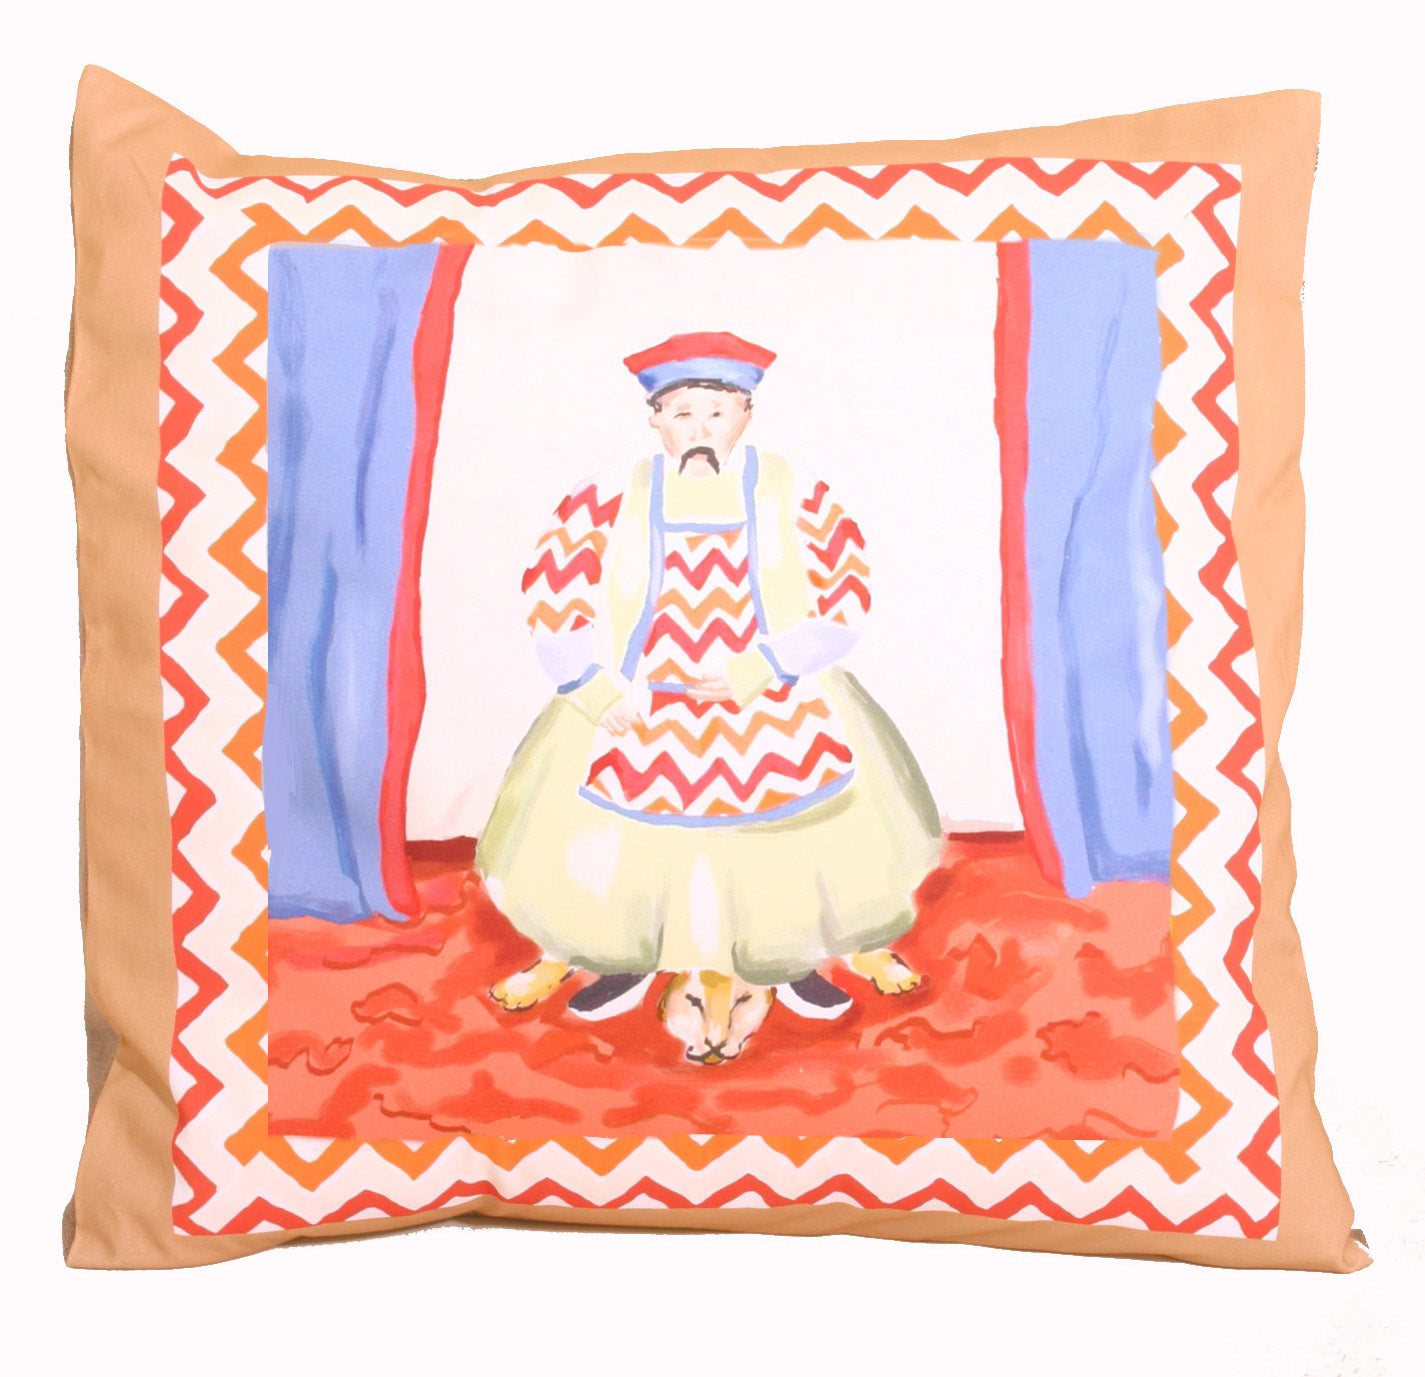 Emperor + Empress Pillow in Tan